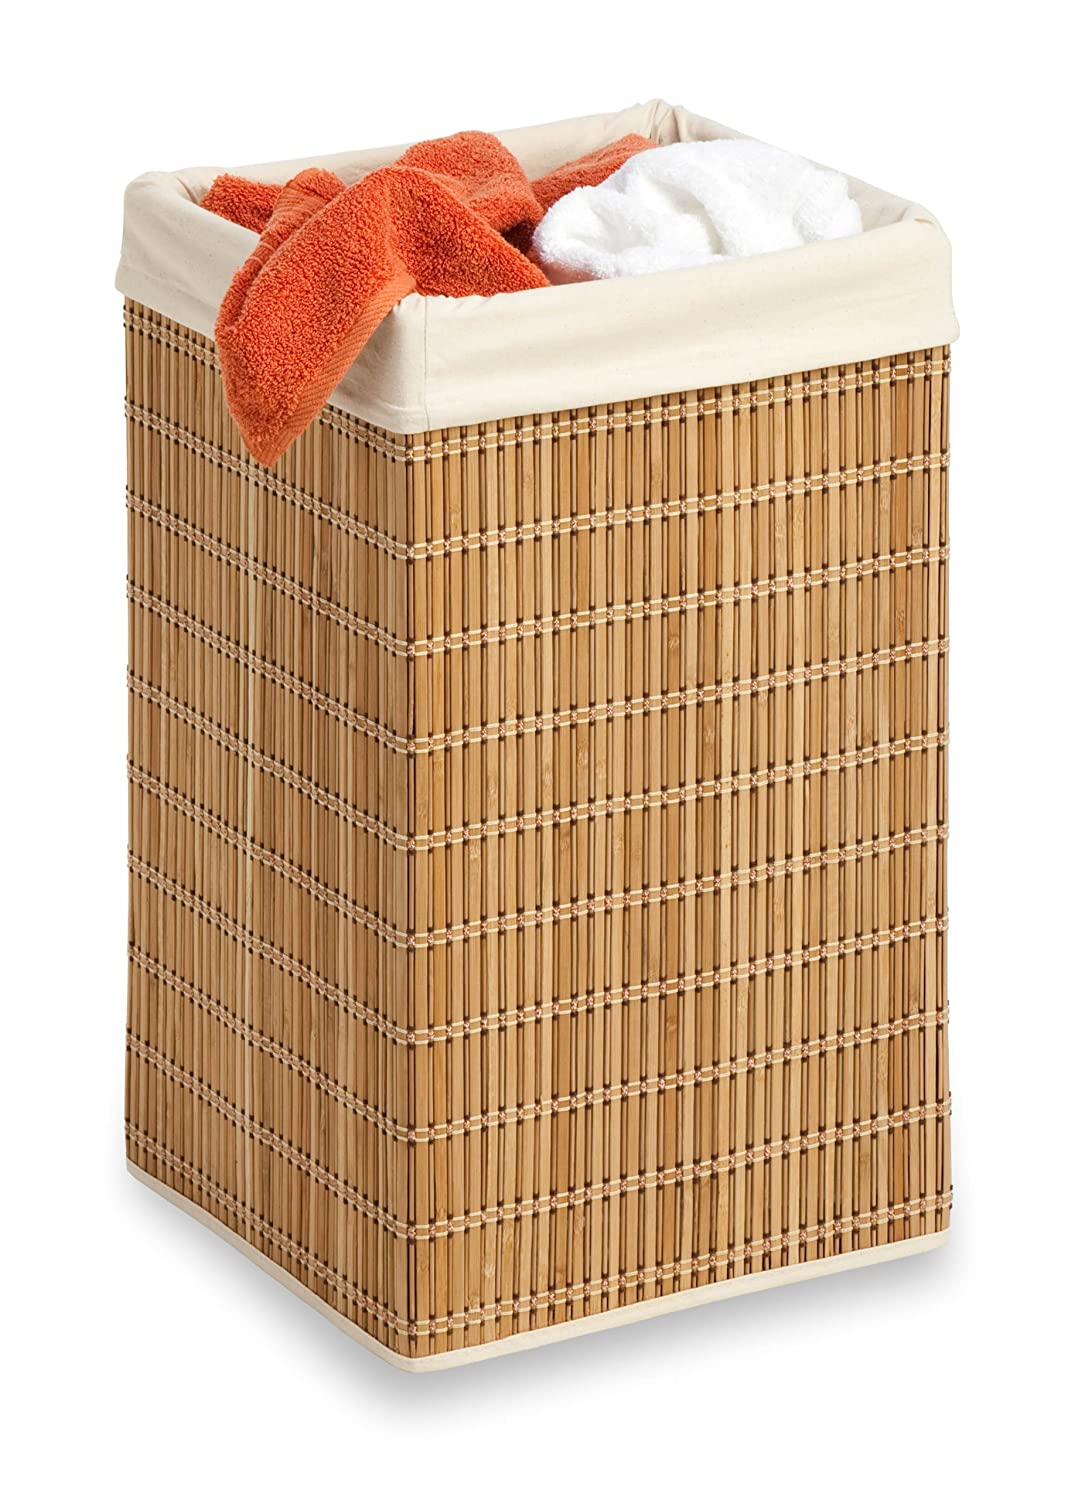 Honey can do hmp 01620 square wicker hamper clothing organizer bamboo new f ebay - Bamboo clothes hamper ...